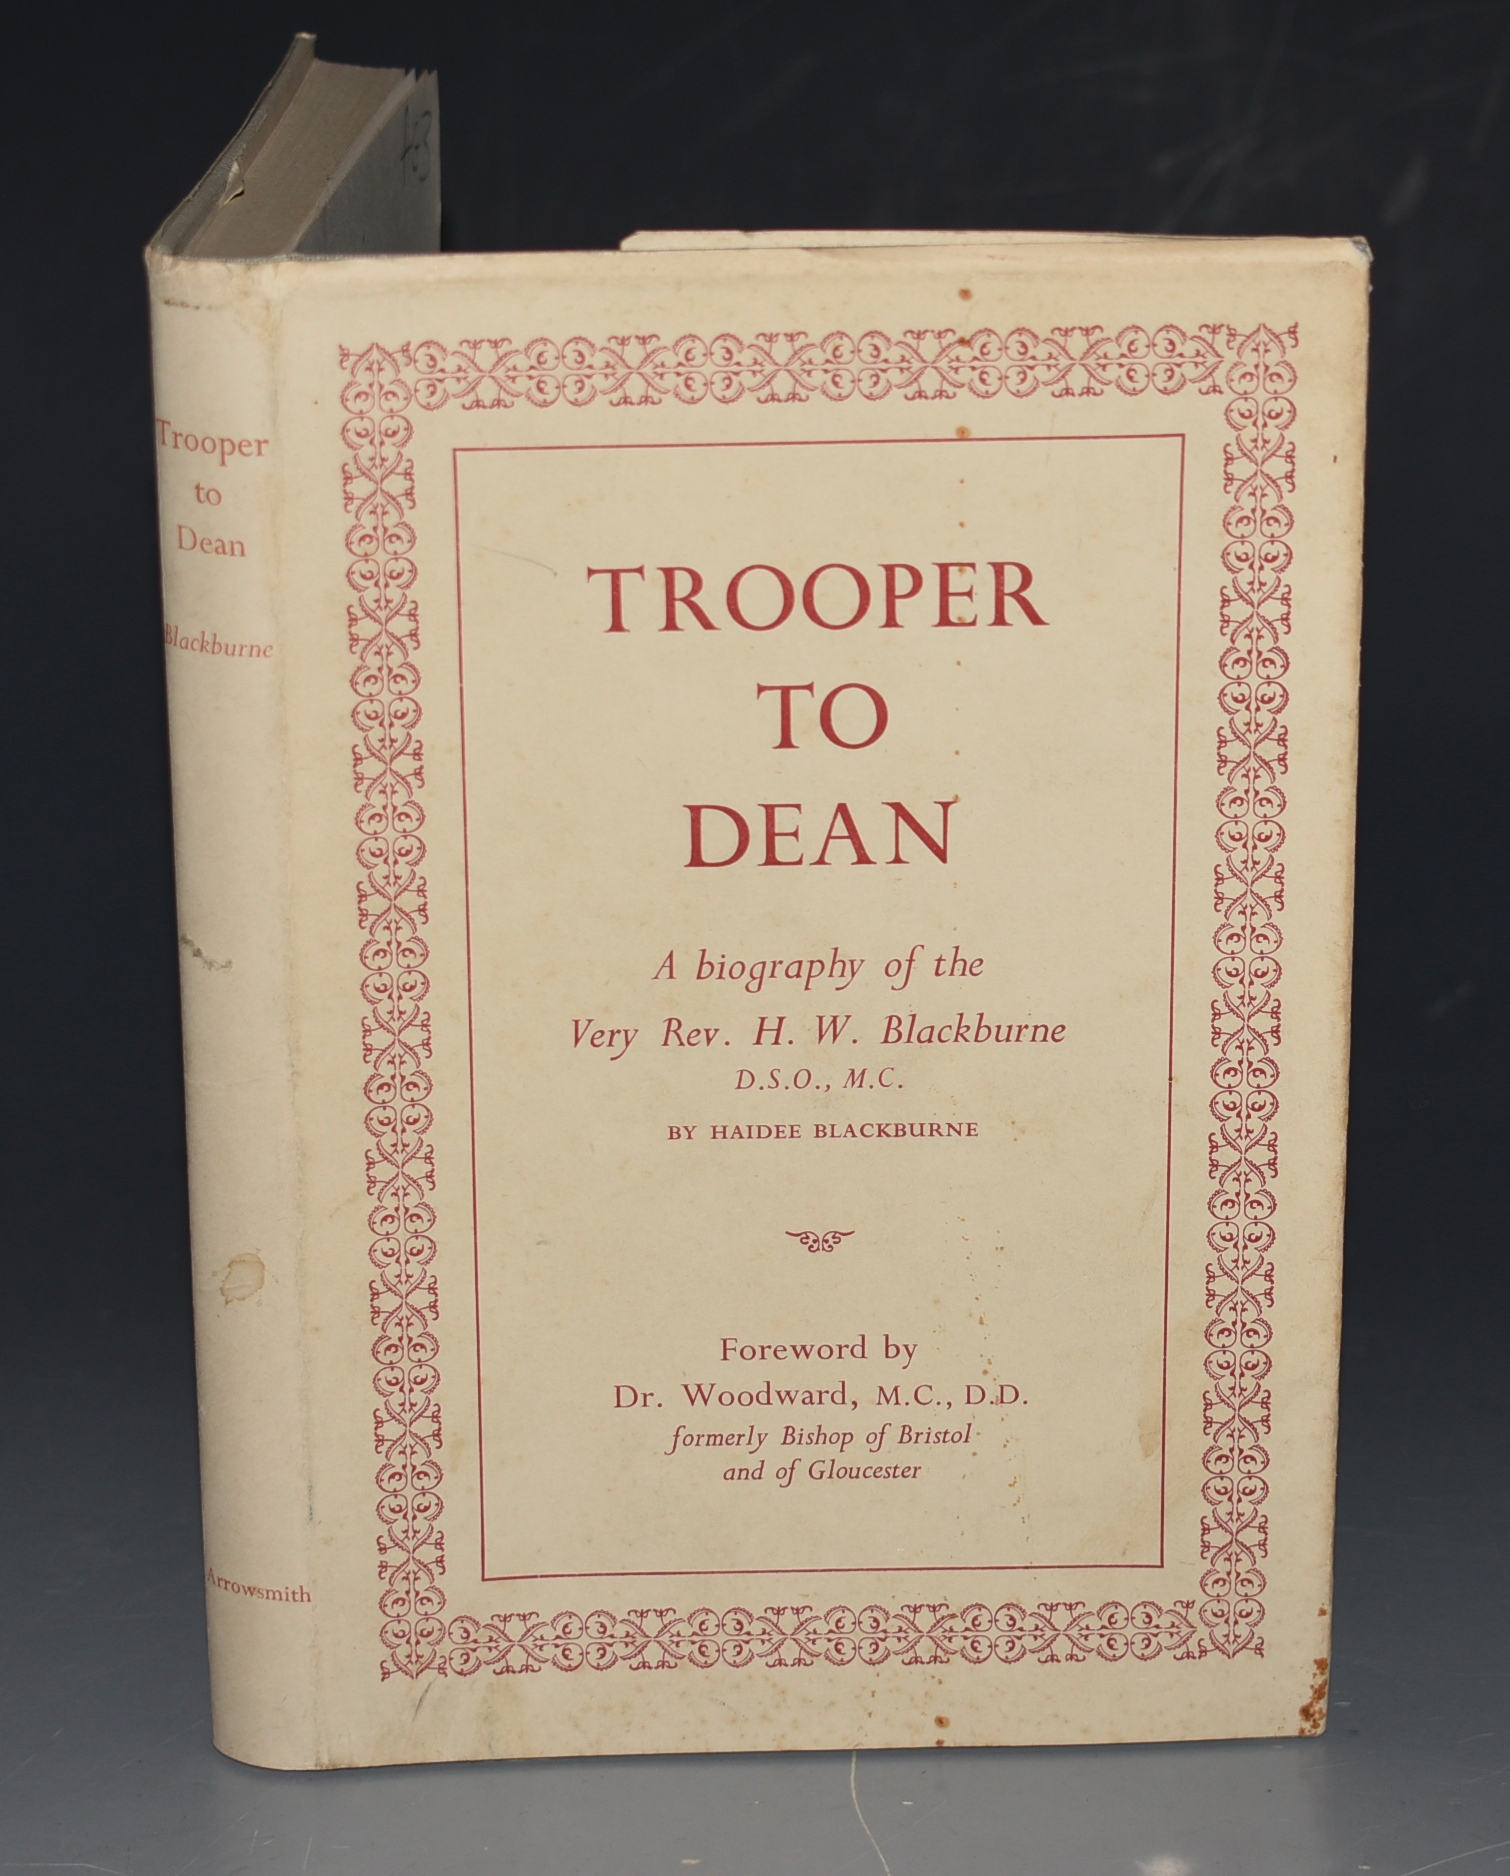 Image for Trooper To Dean A biography of the Very Rev H. W. Blackburne, D.S.O., M.C. Foreword by Dr. Woodward, formerly Bishop of Bristol and Gloucester. SIGNED COPY.